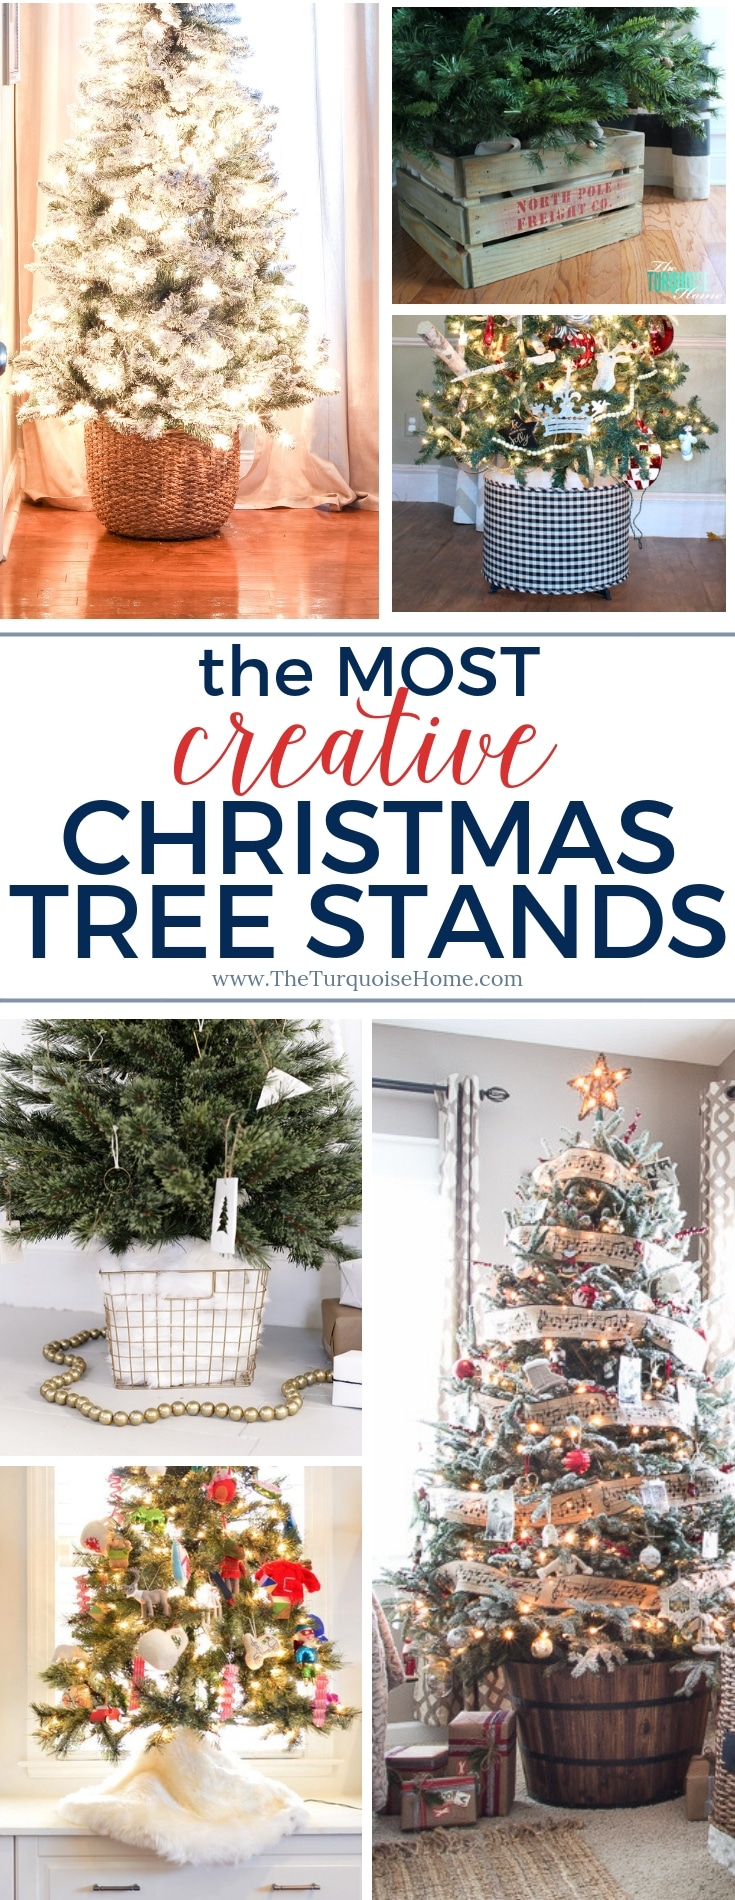 The Most Creative Christmas Tree Stands